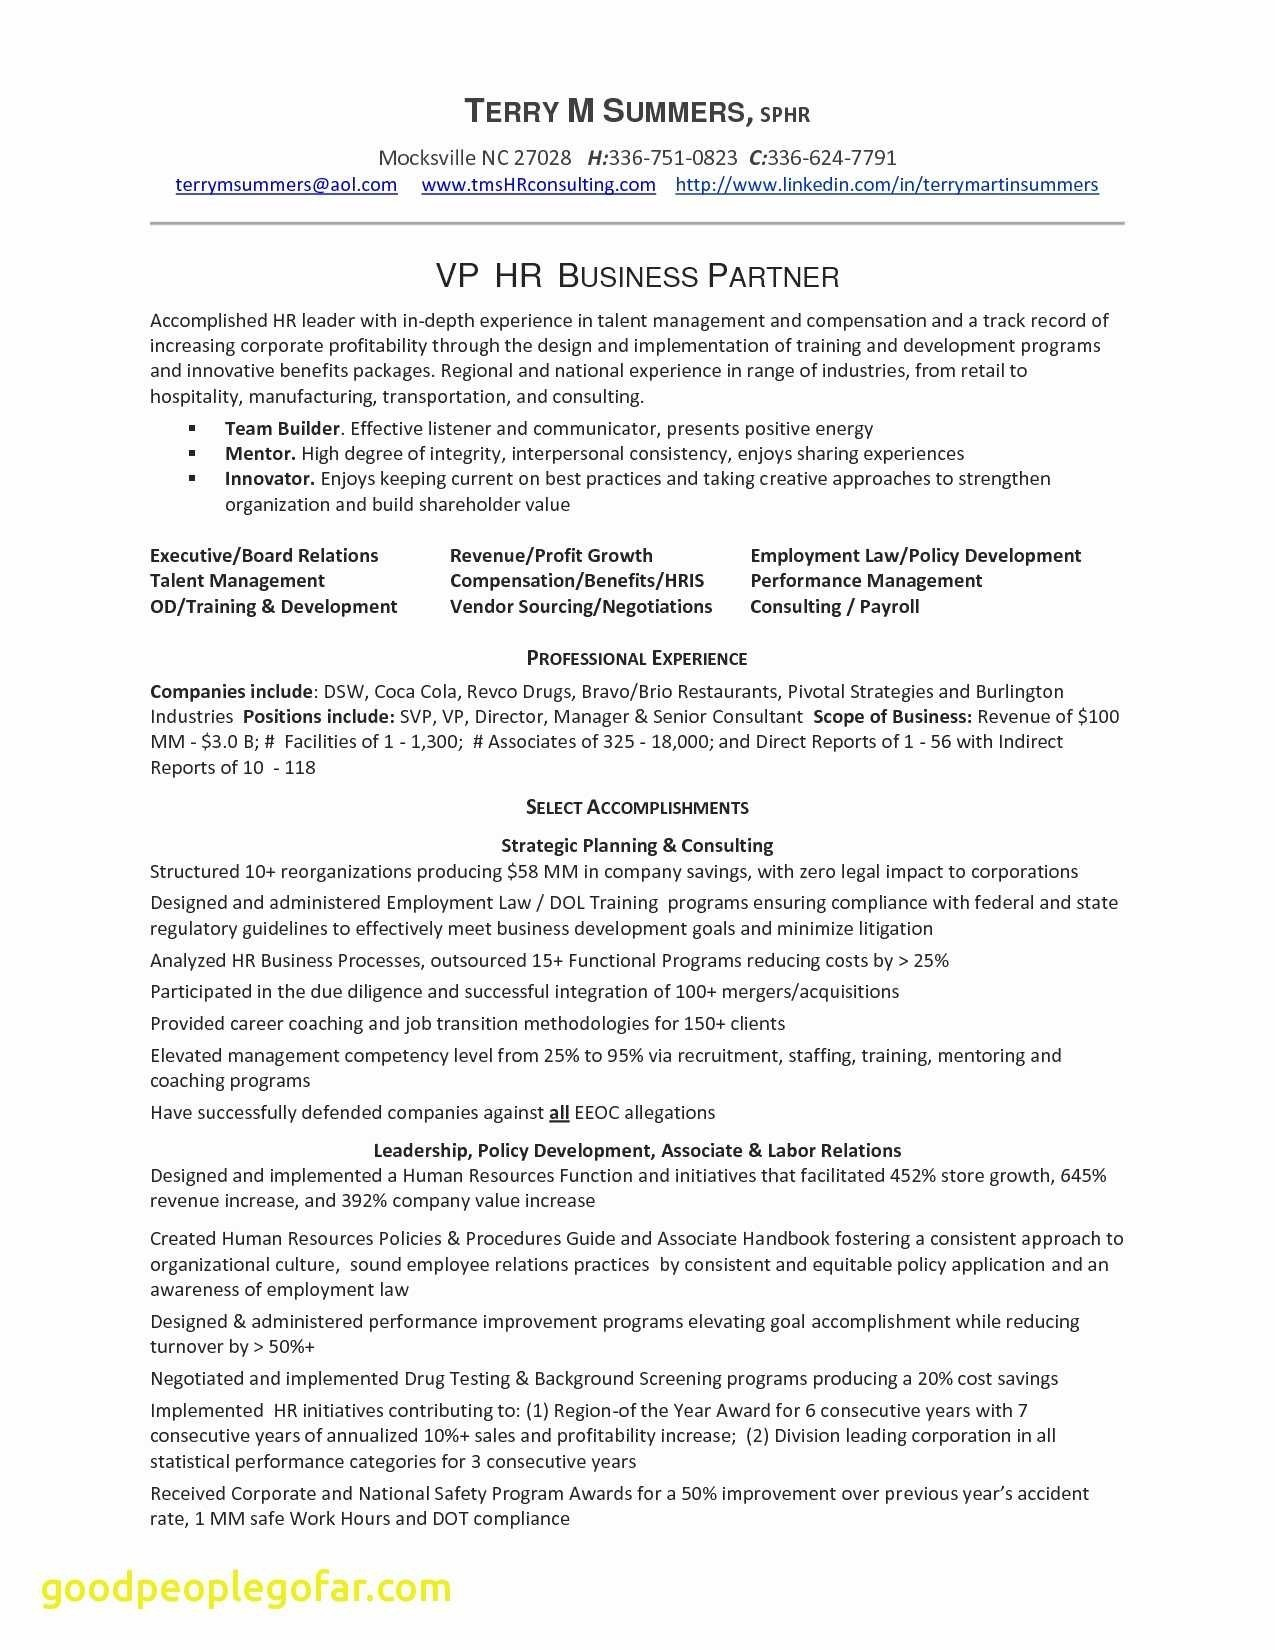 Linkedin Cover Letter Template - Sample Cover Letter for Linkedin Job Save Job Application Letter